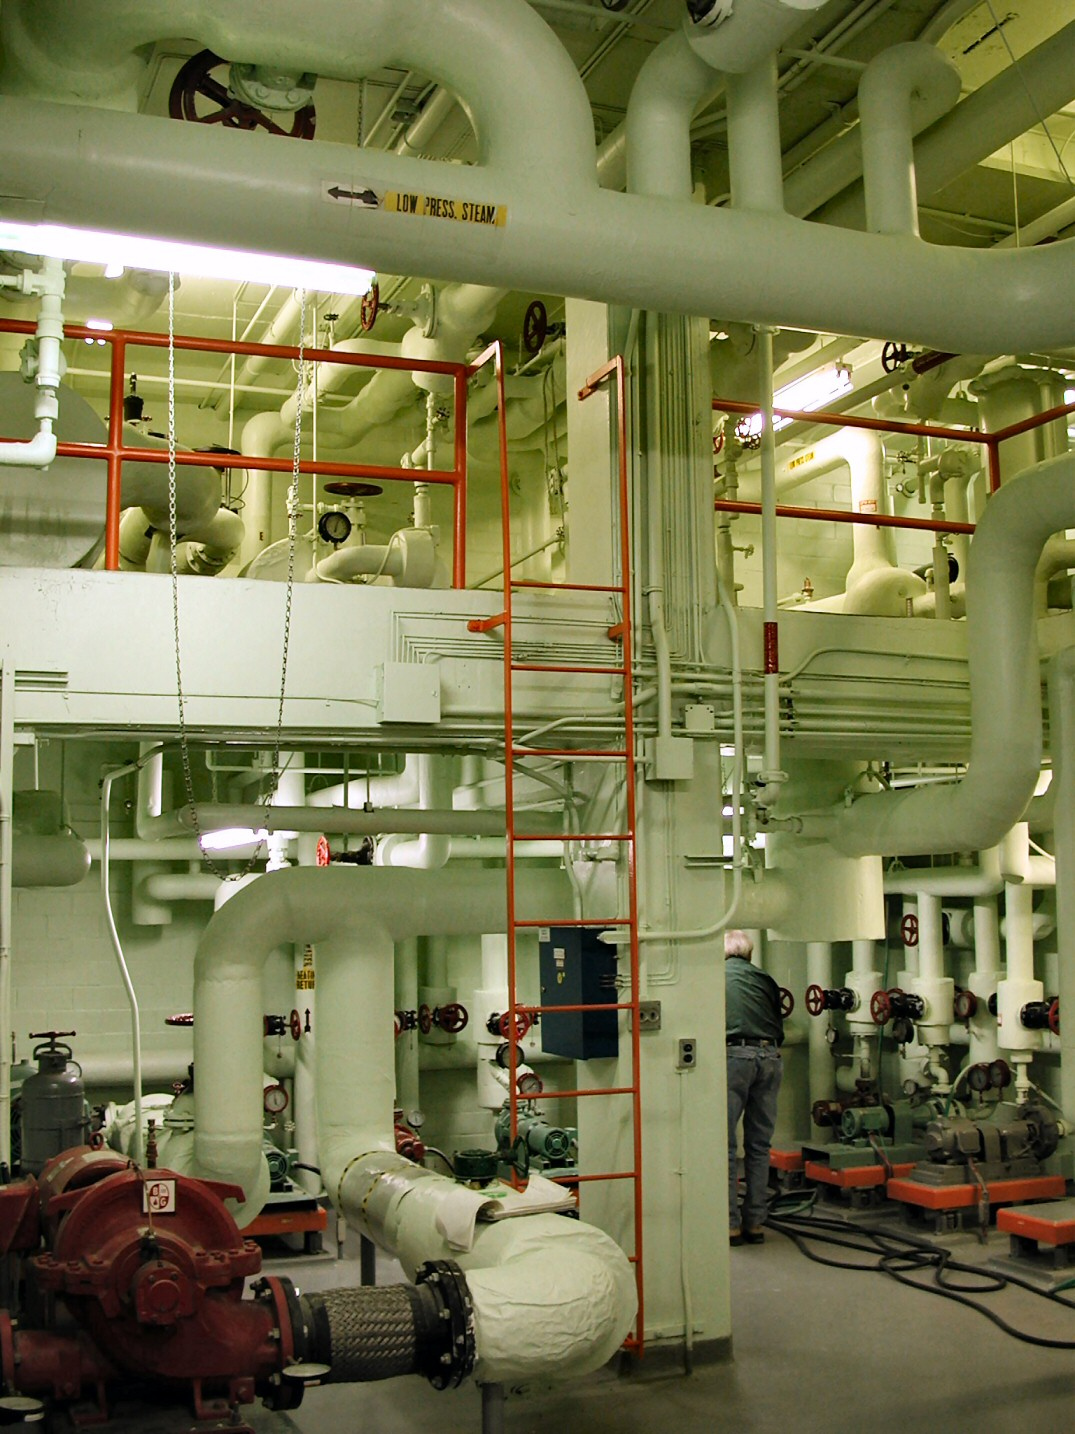 Plastics Piping Systems Safety & Efficiency Checklist